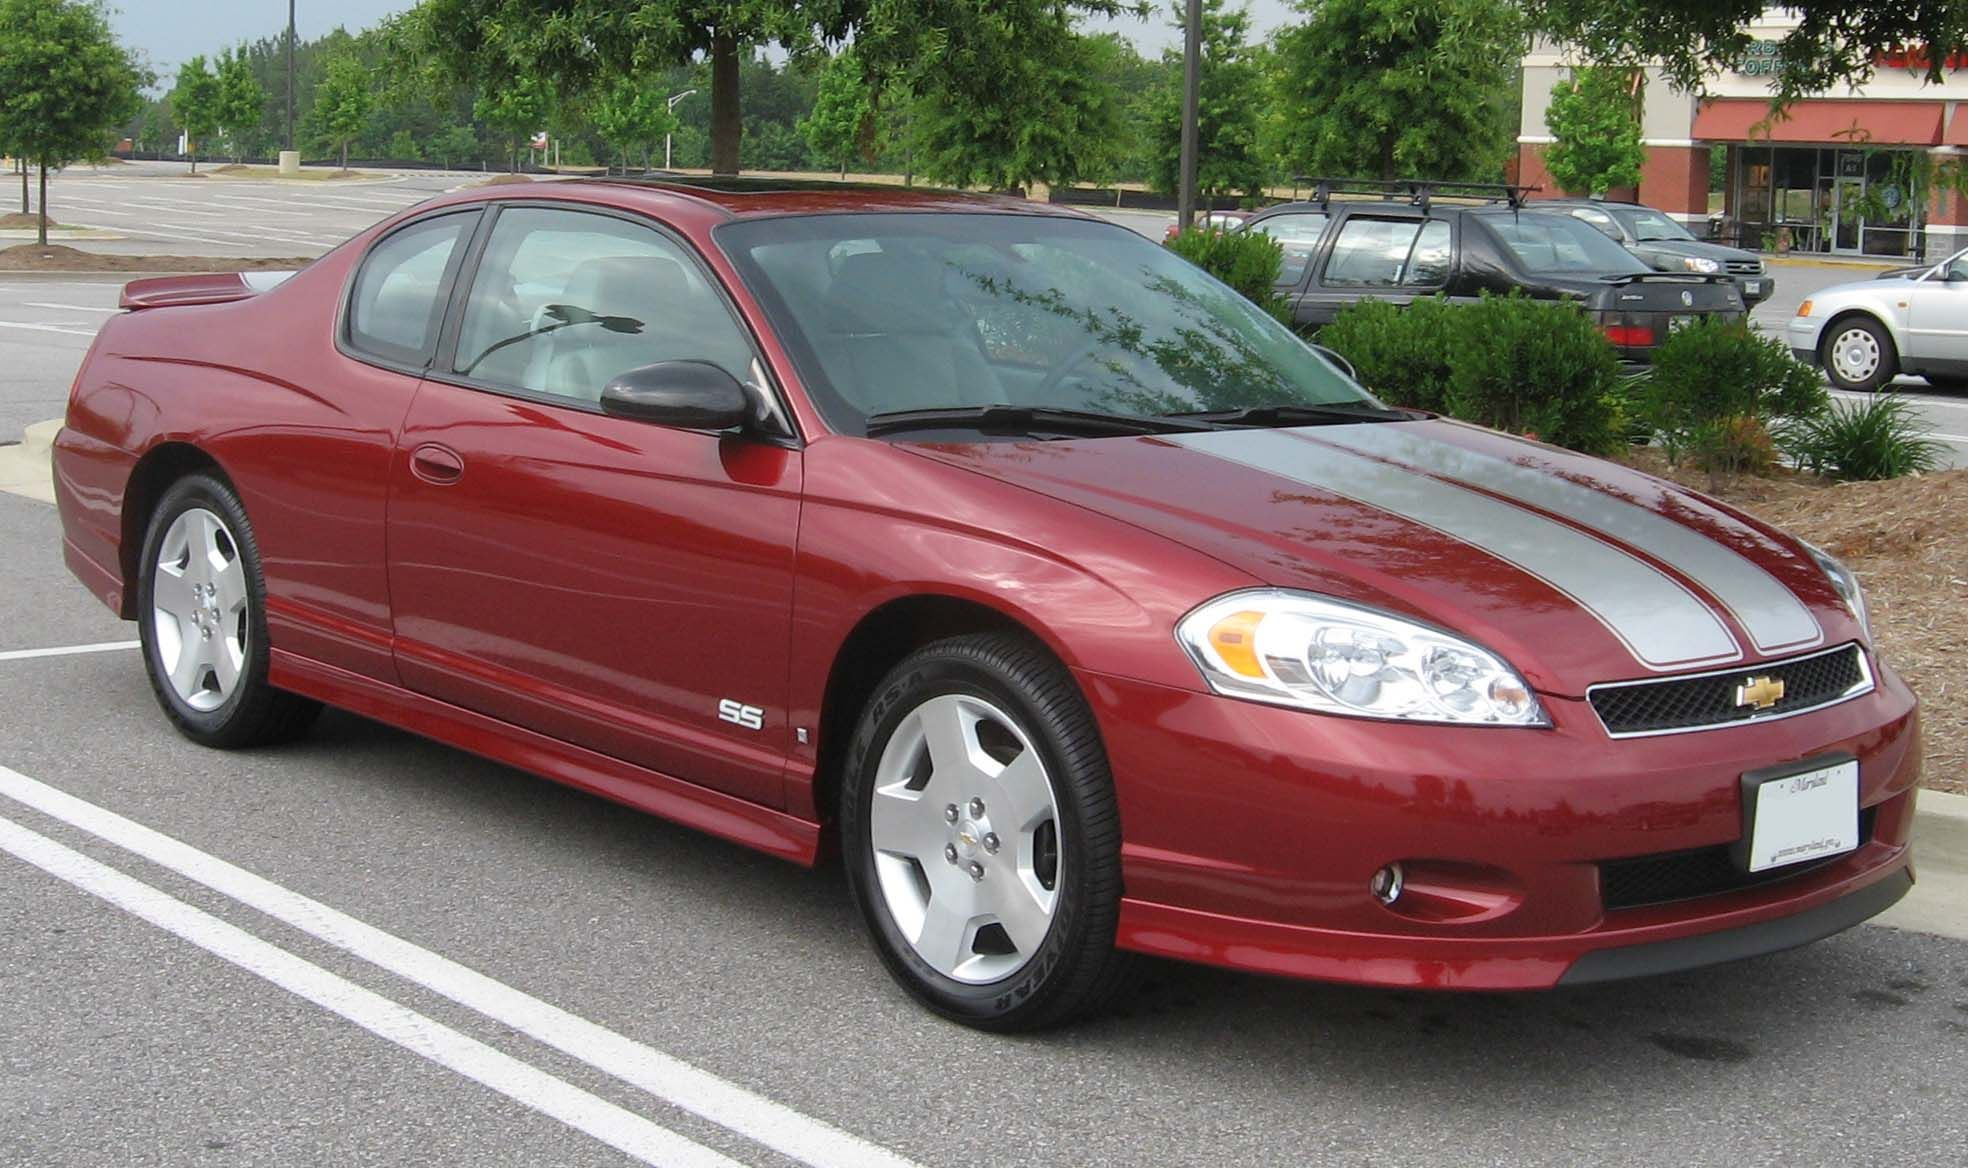 2007 chevrolet monte carlo ss oddly enough the last monte carlo ss 2017 Chevrolet Monte Carlo SS